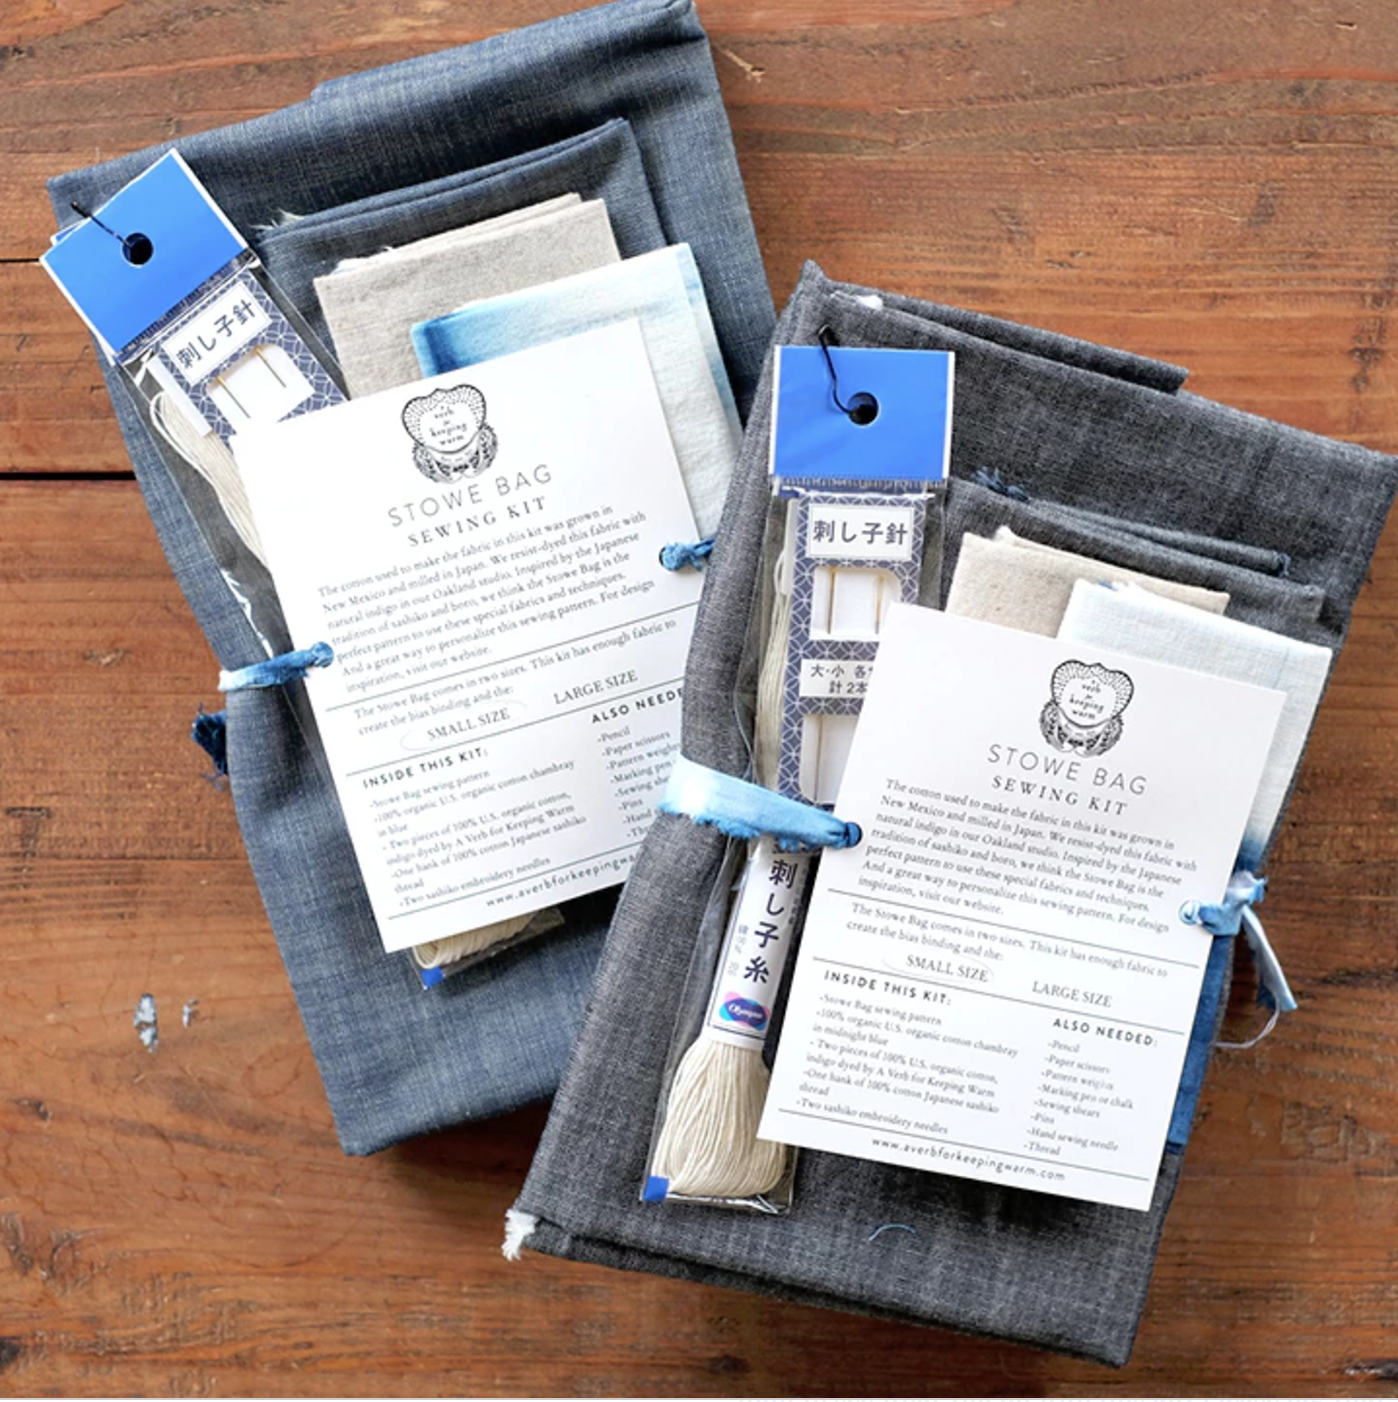 AVFKW Stowe Bag Sewing Kit from Fringe Association